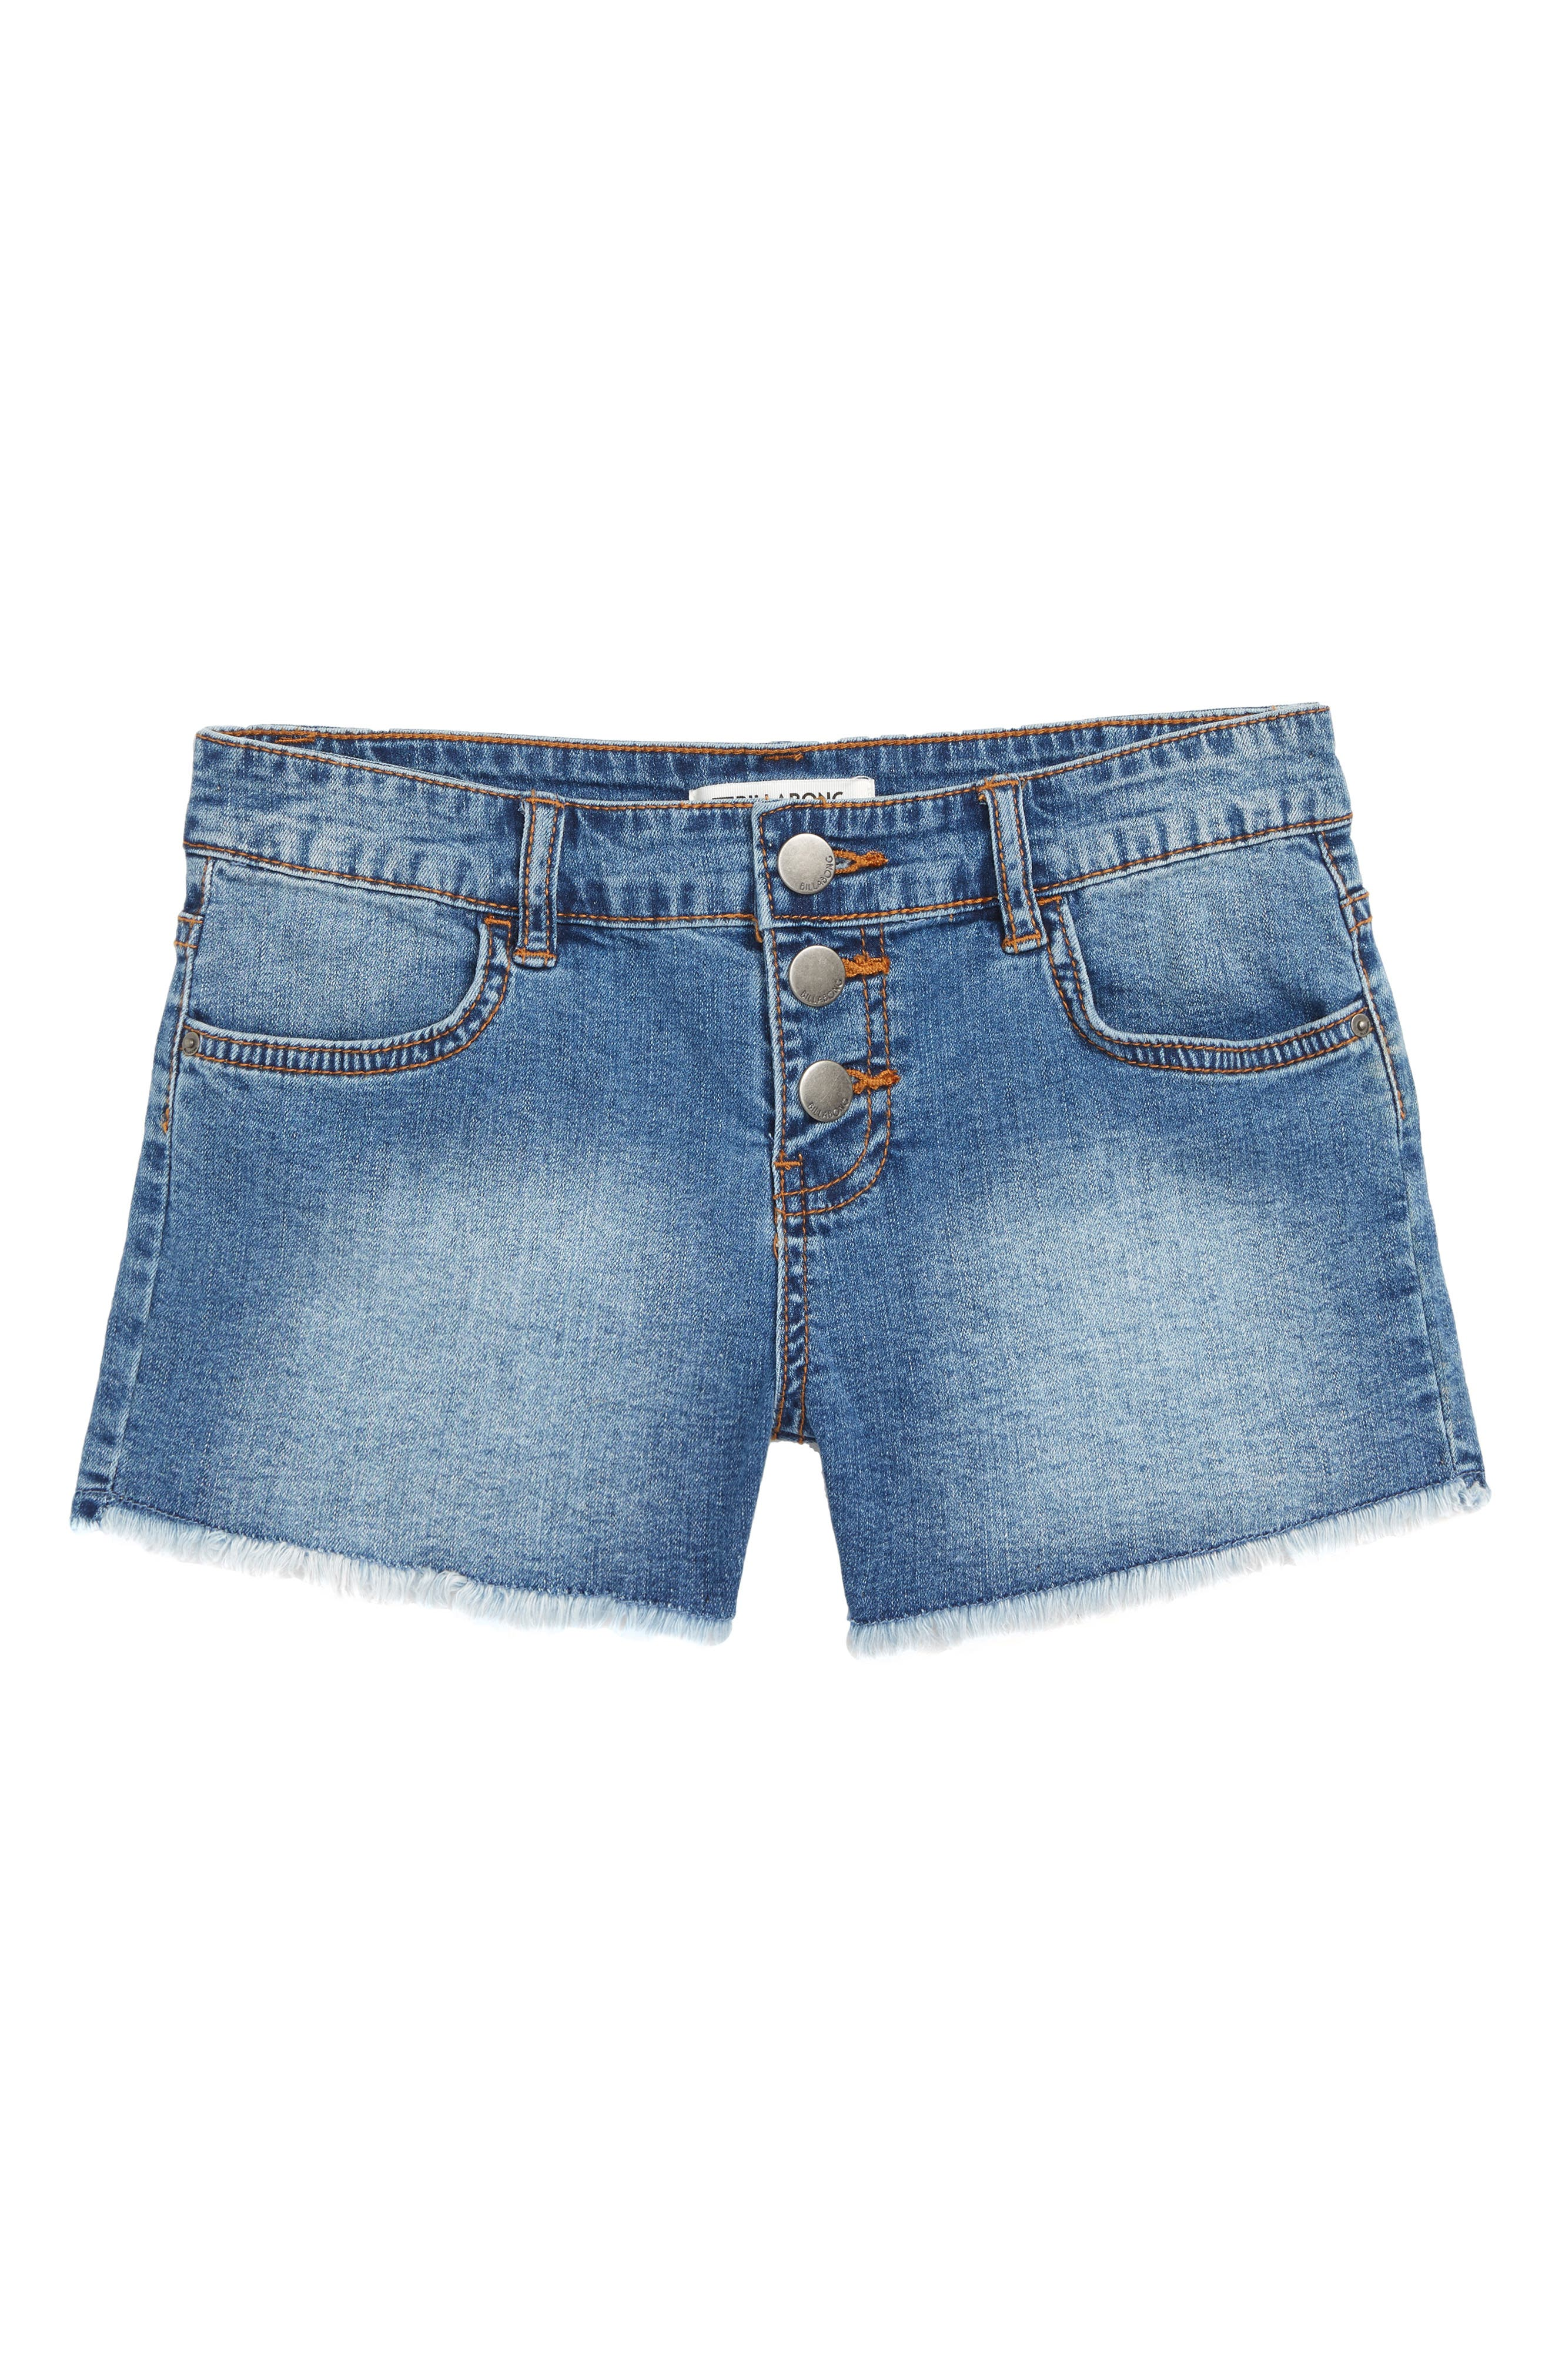 Buttoned Up Denim Shorts,                         Main,                         color, BCB